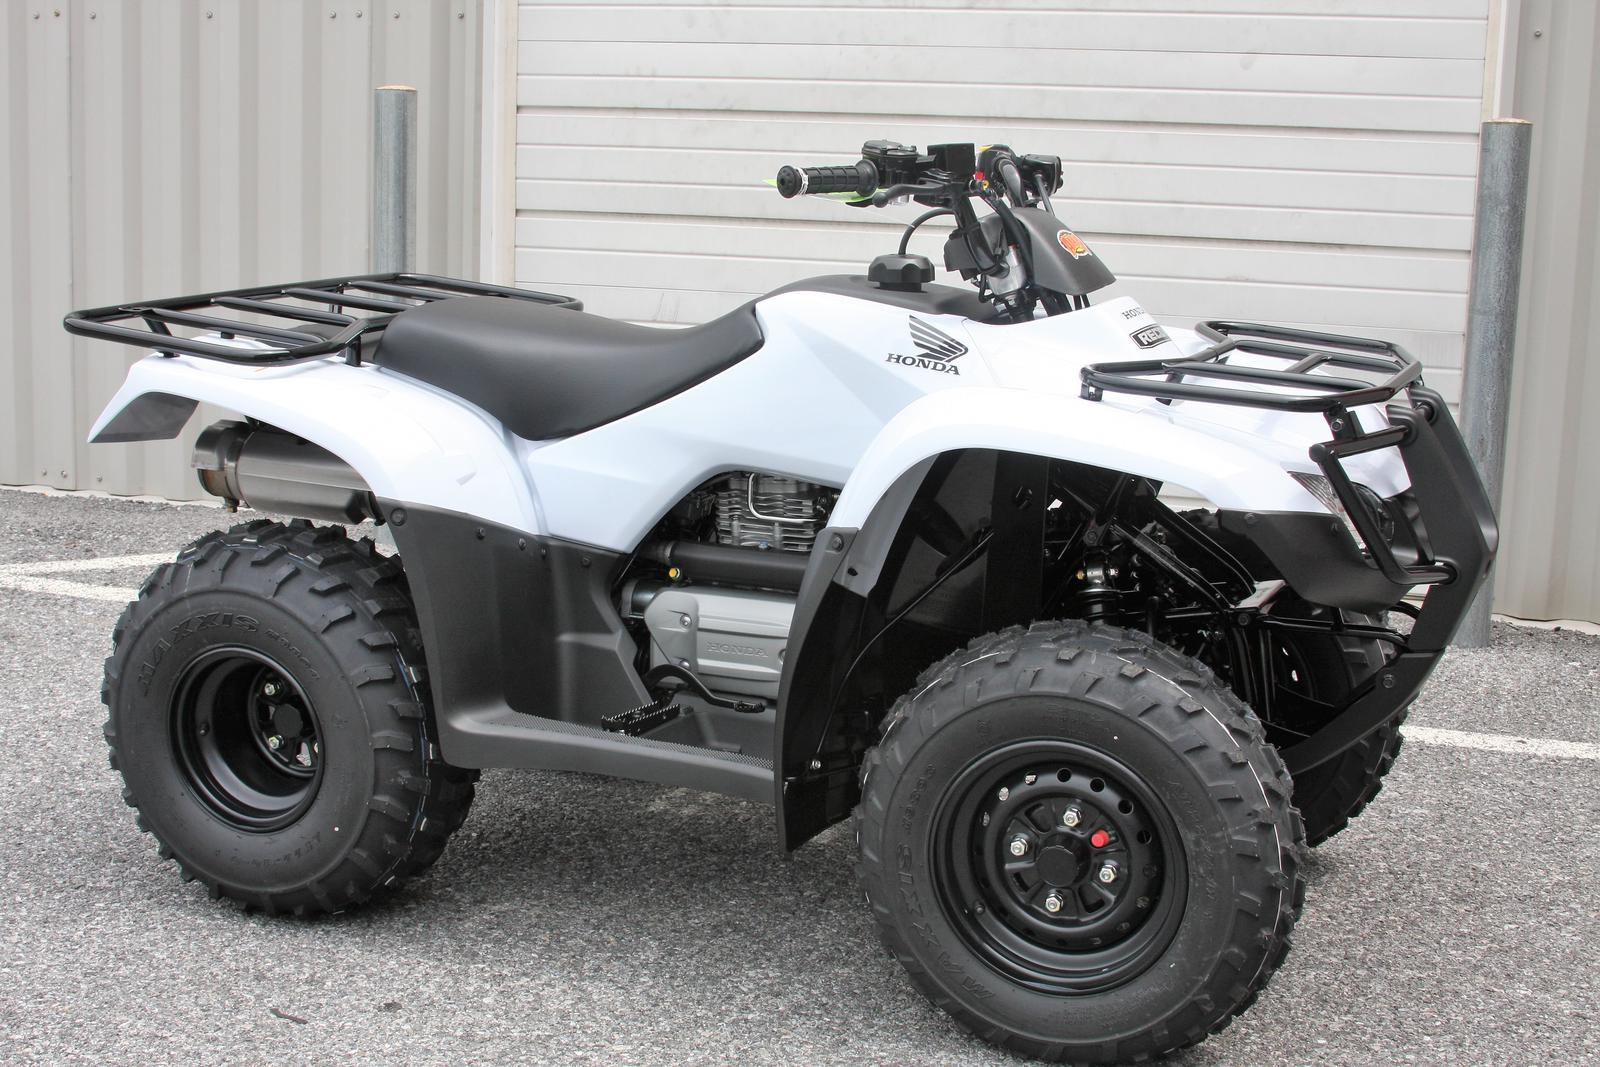 2018 Honda RECON for sale in YORK, PA | AMS Action Motorsports (717)  757-2688